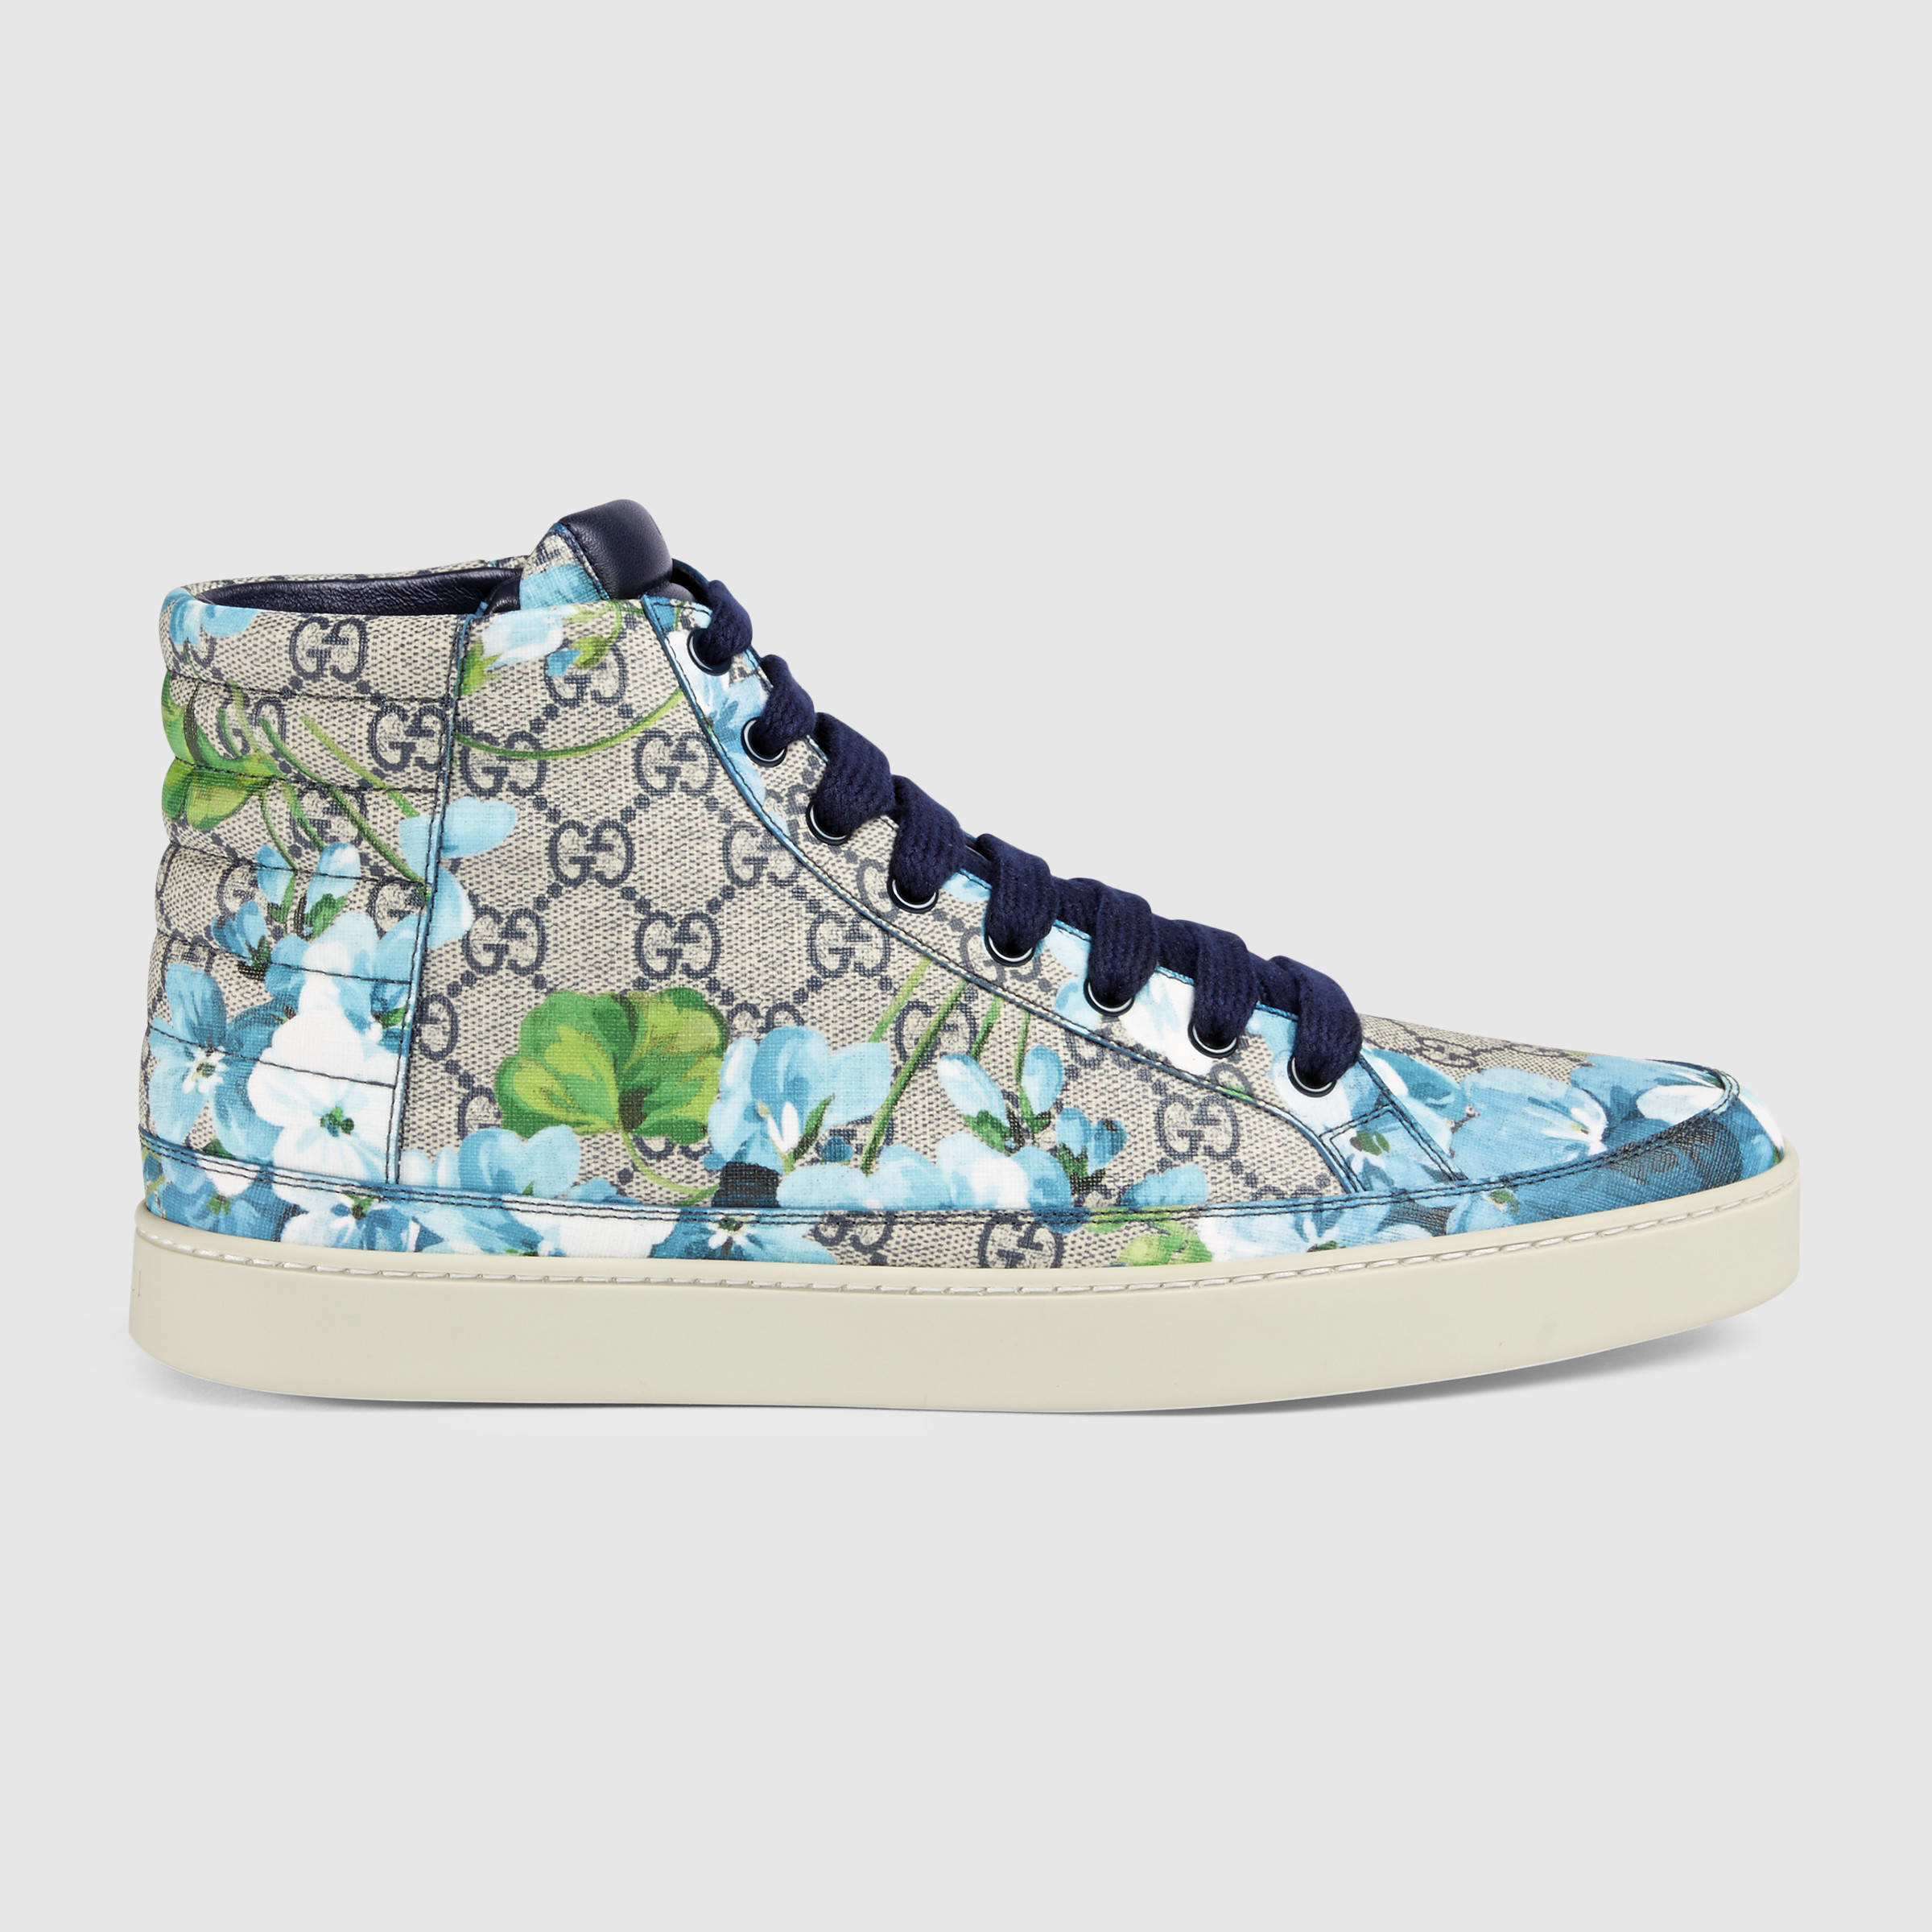 f1f6b5a4eaa2a9 Gucci Gg Blooms High-top Sneaker in Blue for Men - Lyst